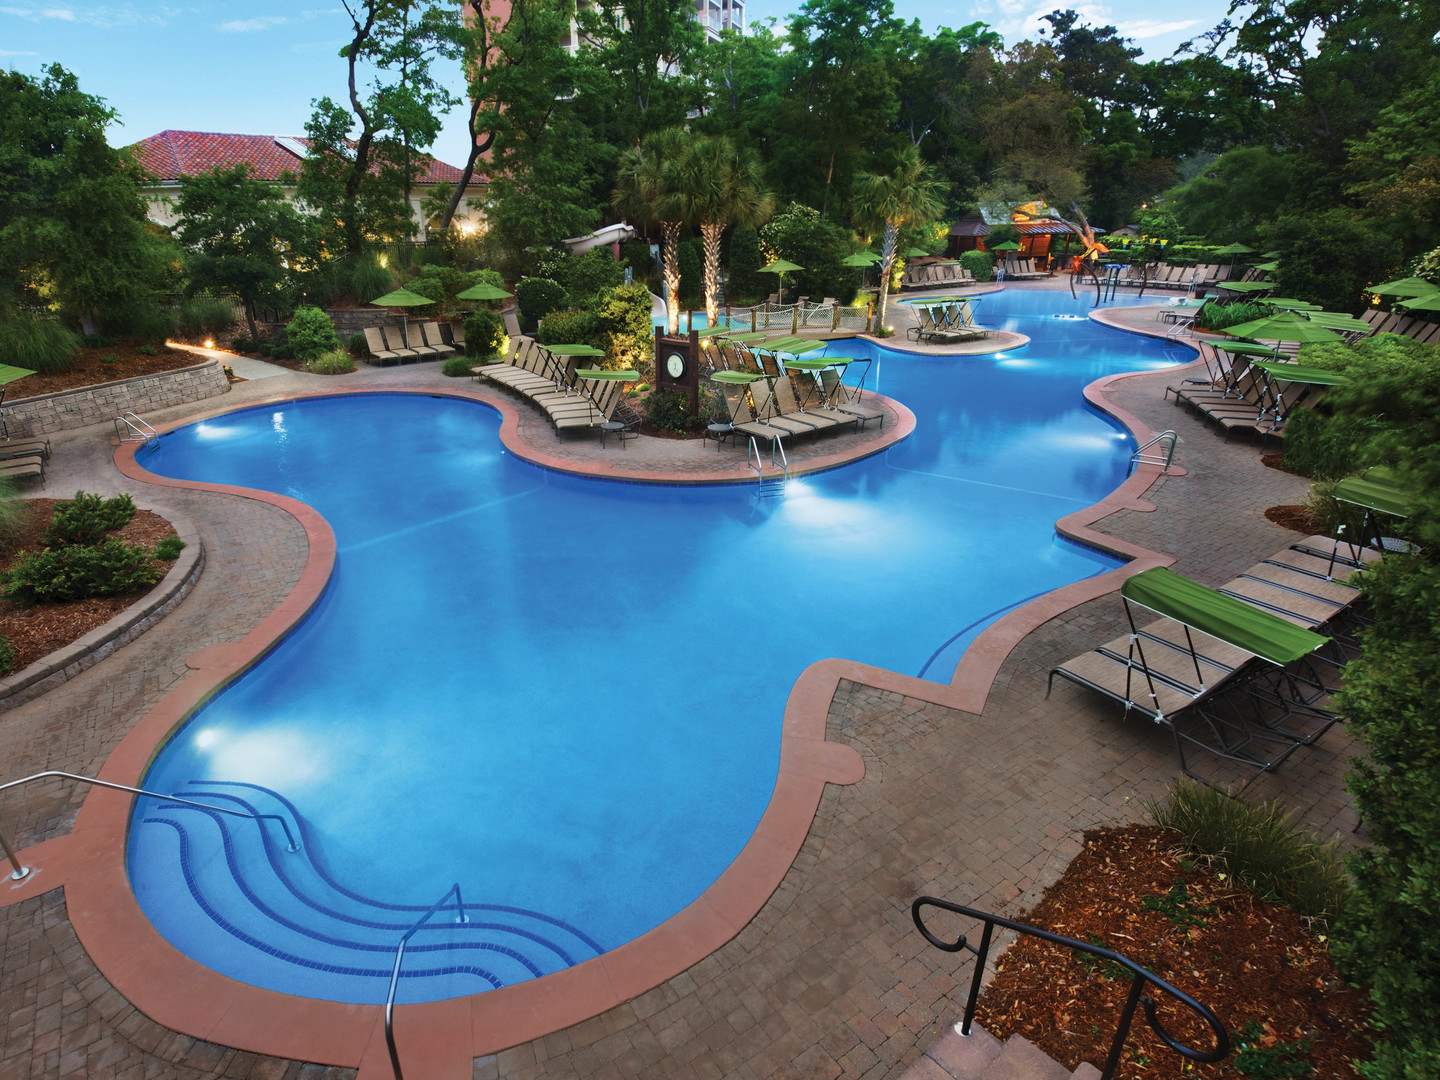 Marriott's OceanWatch Woodsy Pool. Marriott's OceanWatch is located in Myrtle Beach, South Carolina United States.